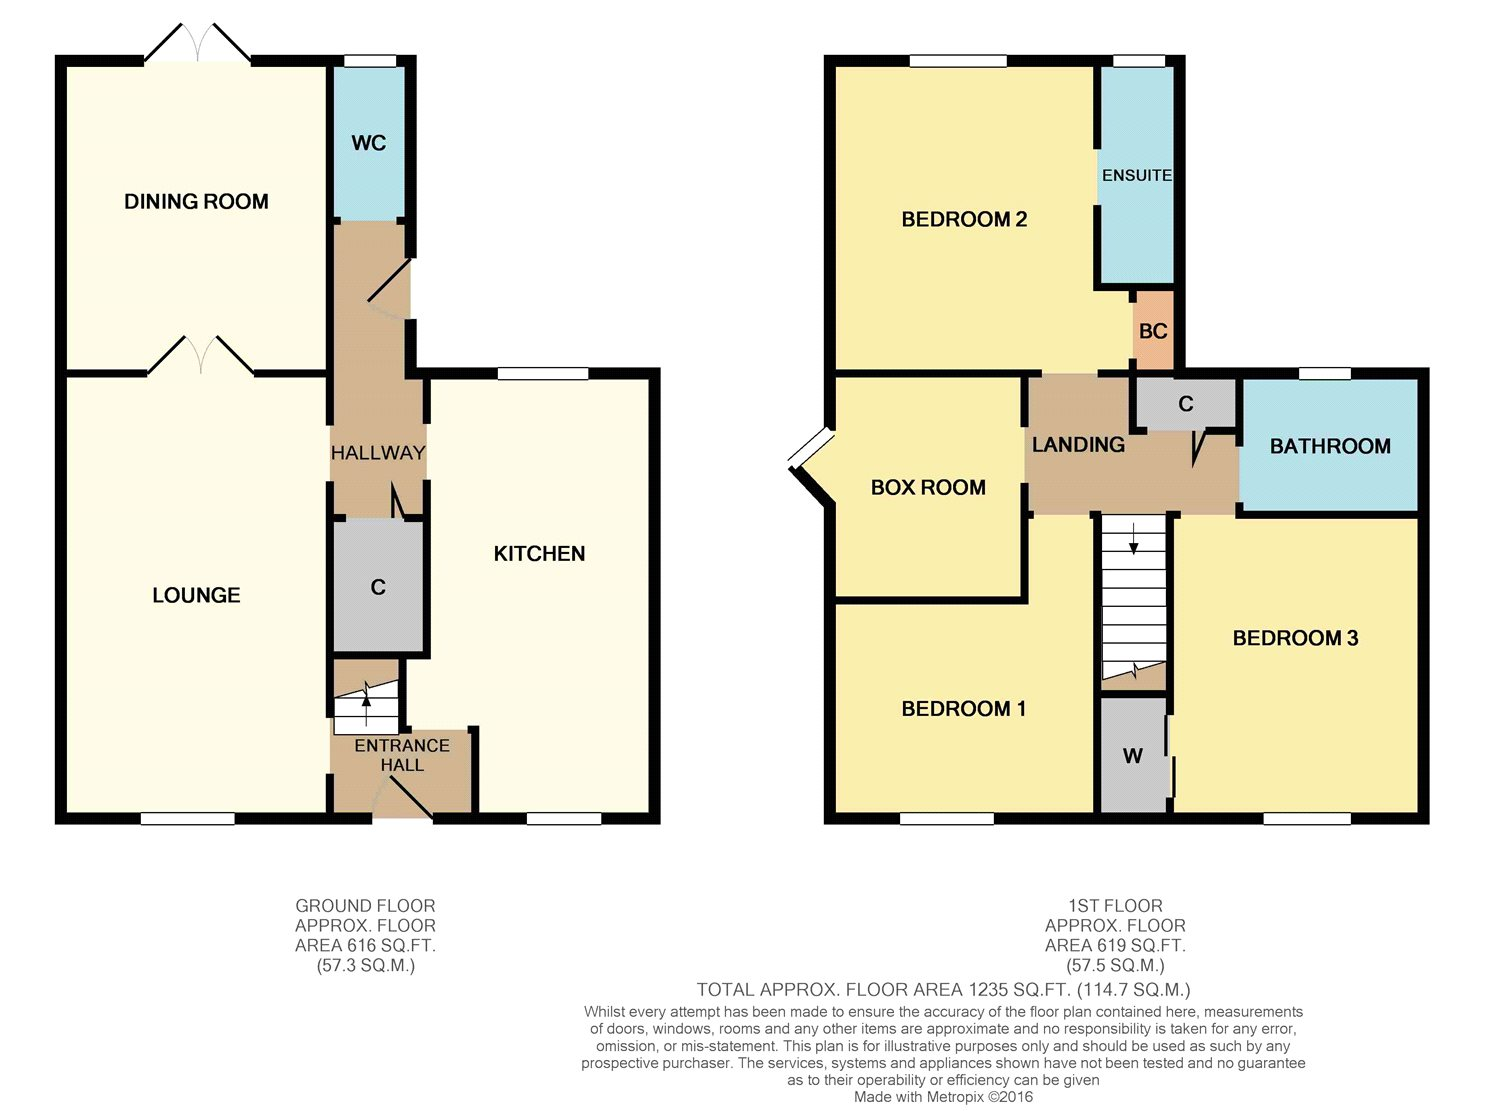 3 bedroom house average electric bill 1 bedroom apartments b picture on  with 3 bedroom house